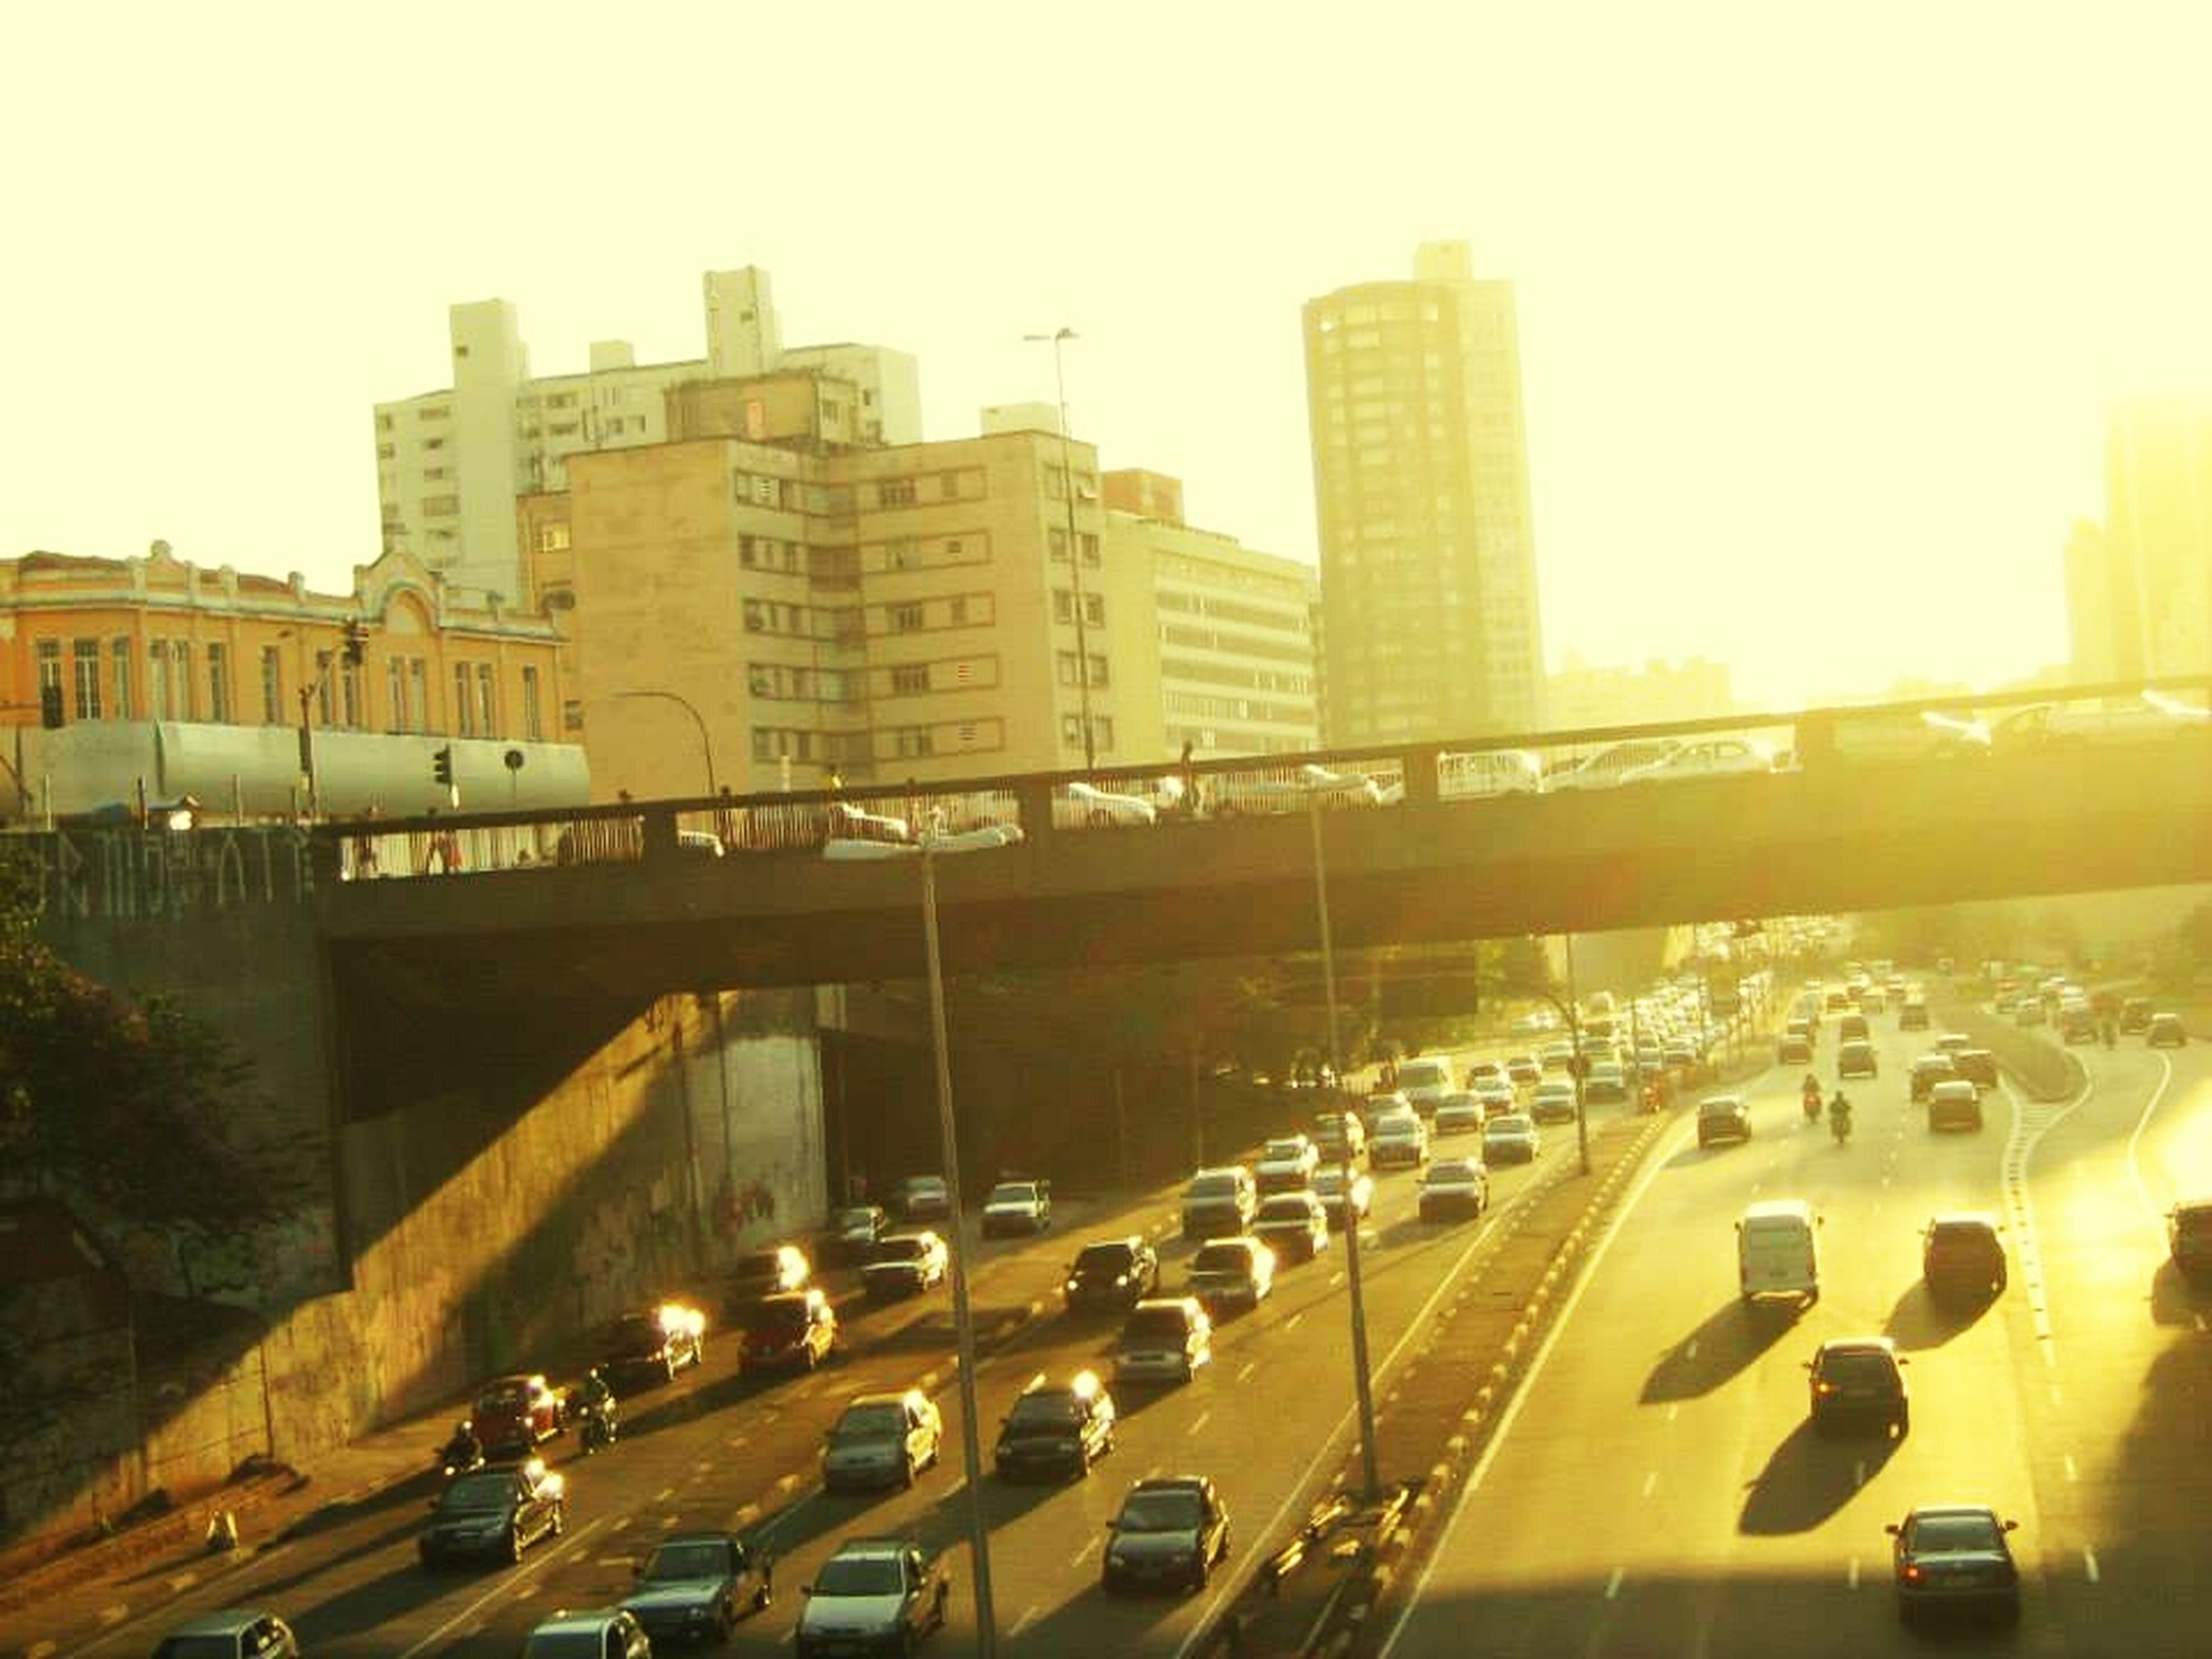 architecture, transportation, built structure, building exterior, city, car, land vehicle, mode of transport, high angle view, traffic, road, street, clear sky, city life, bridge - man made structure, city street, connection, public transportation, on the move, outdoors